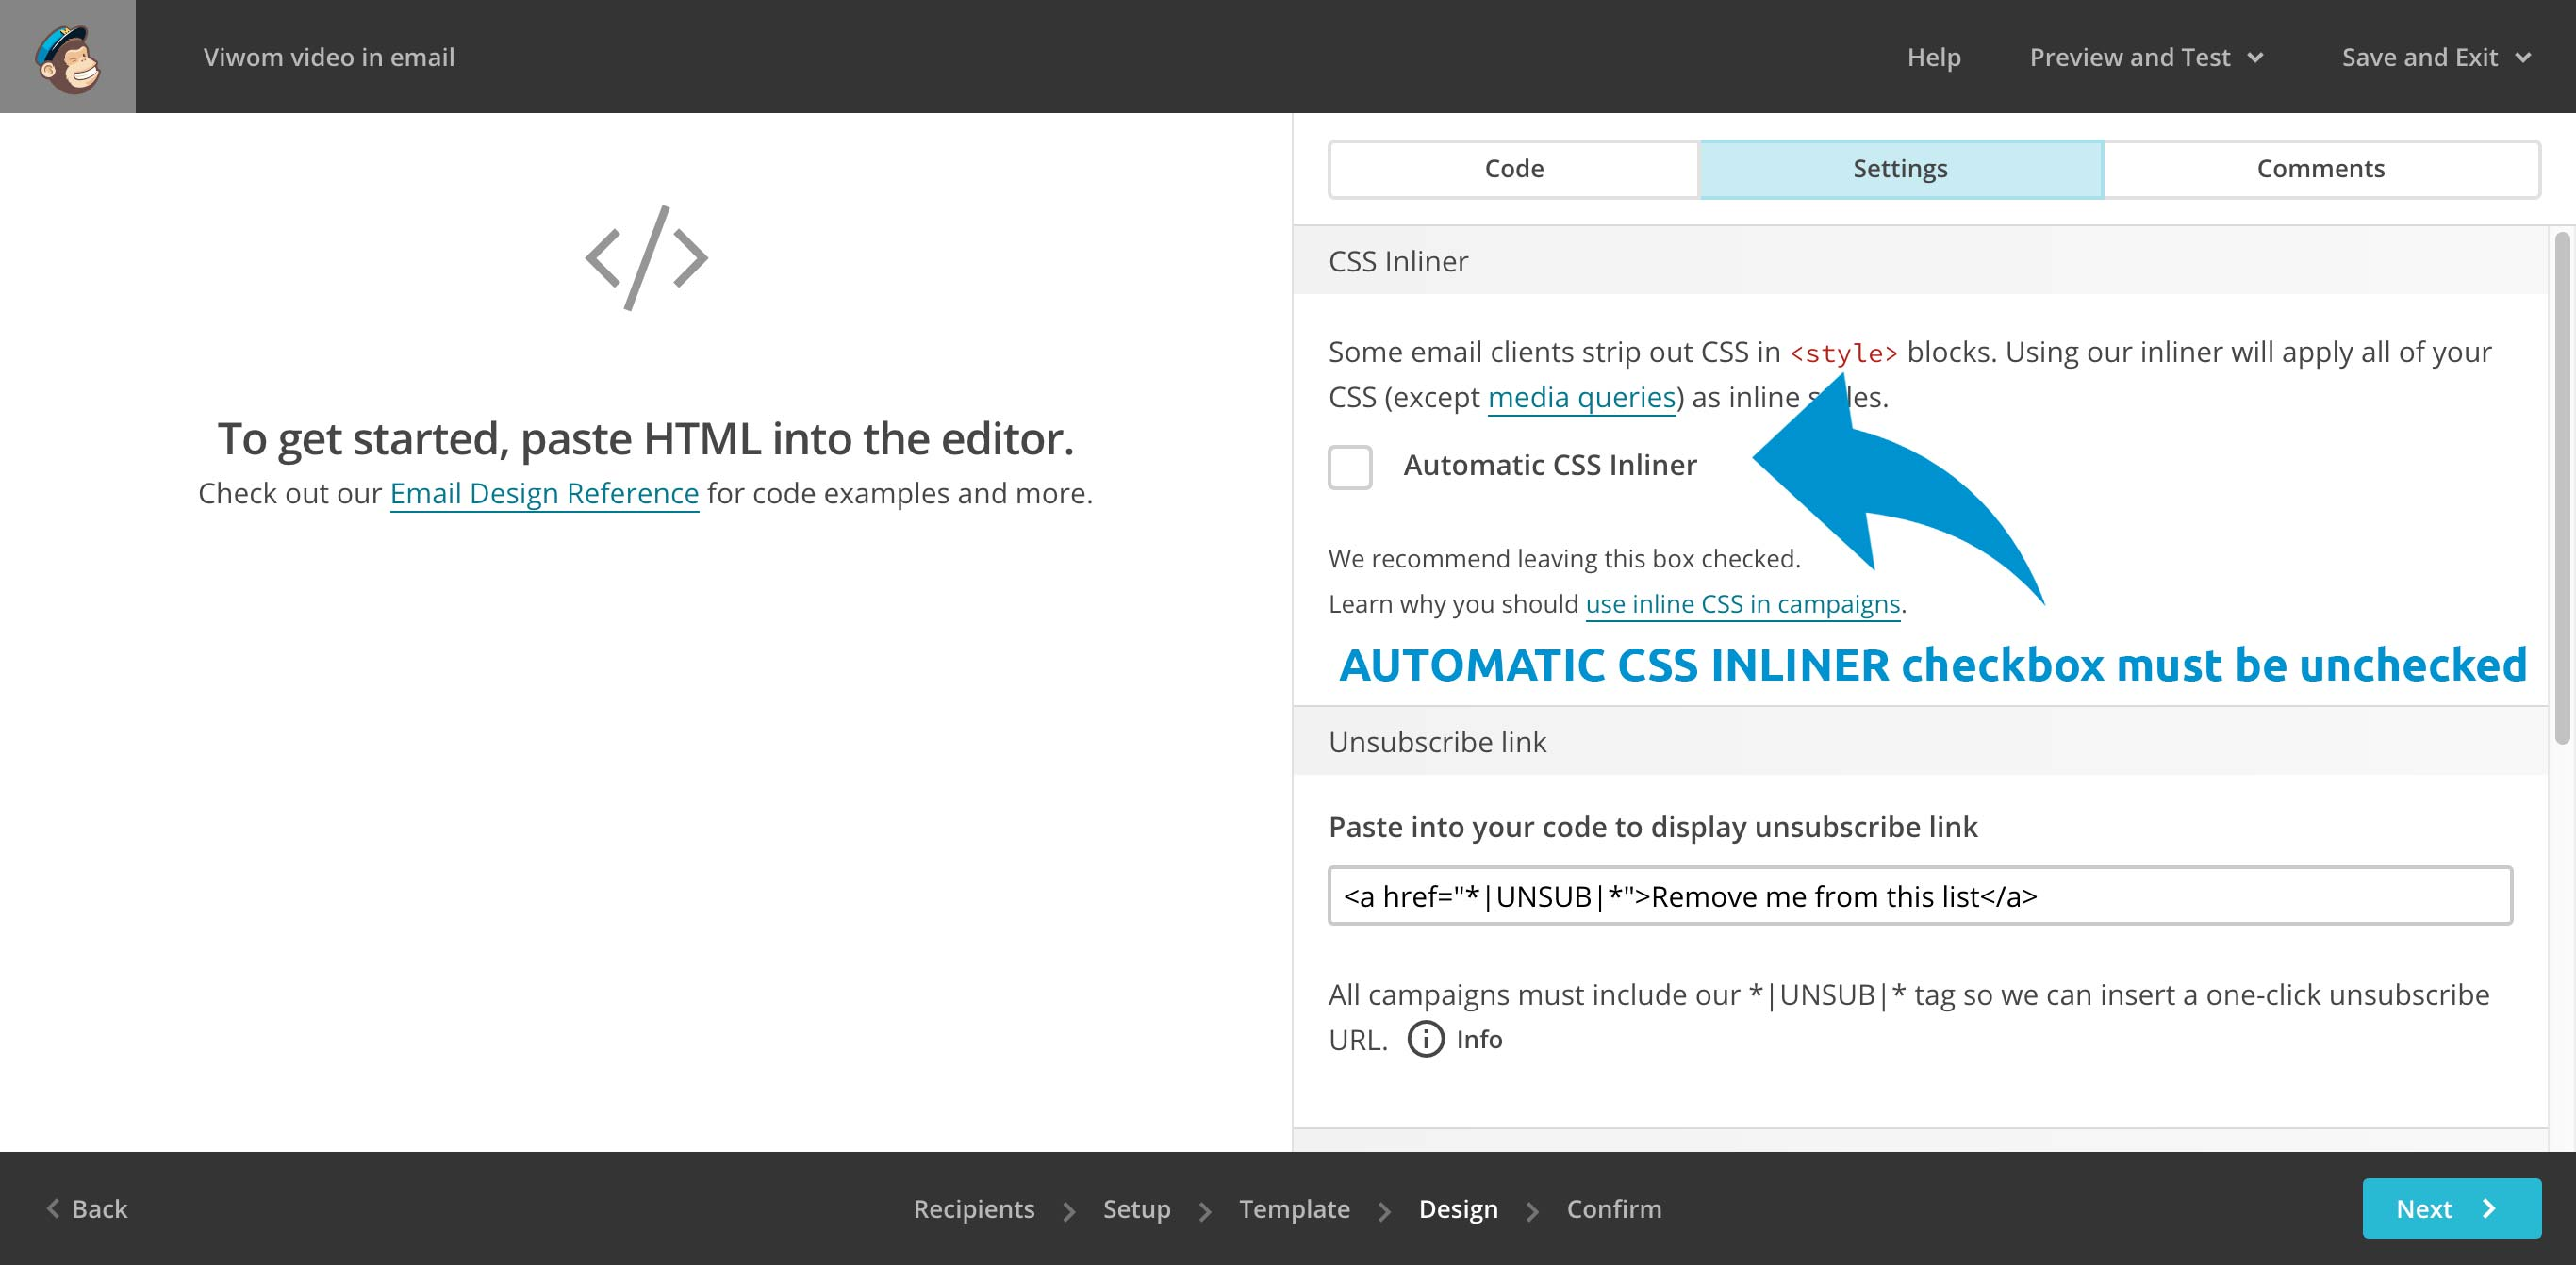 AUTOMATIC CSS INLINER unchecked